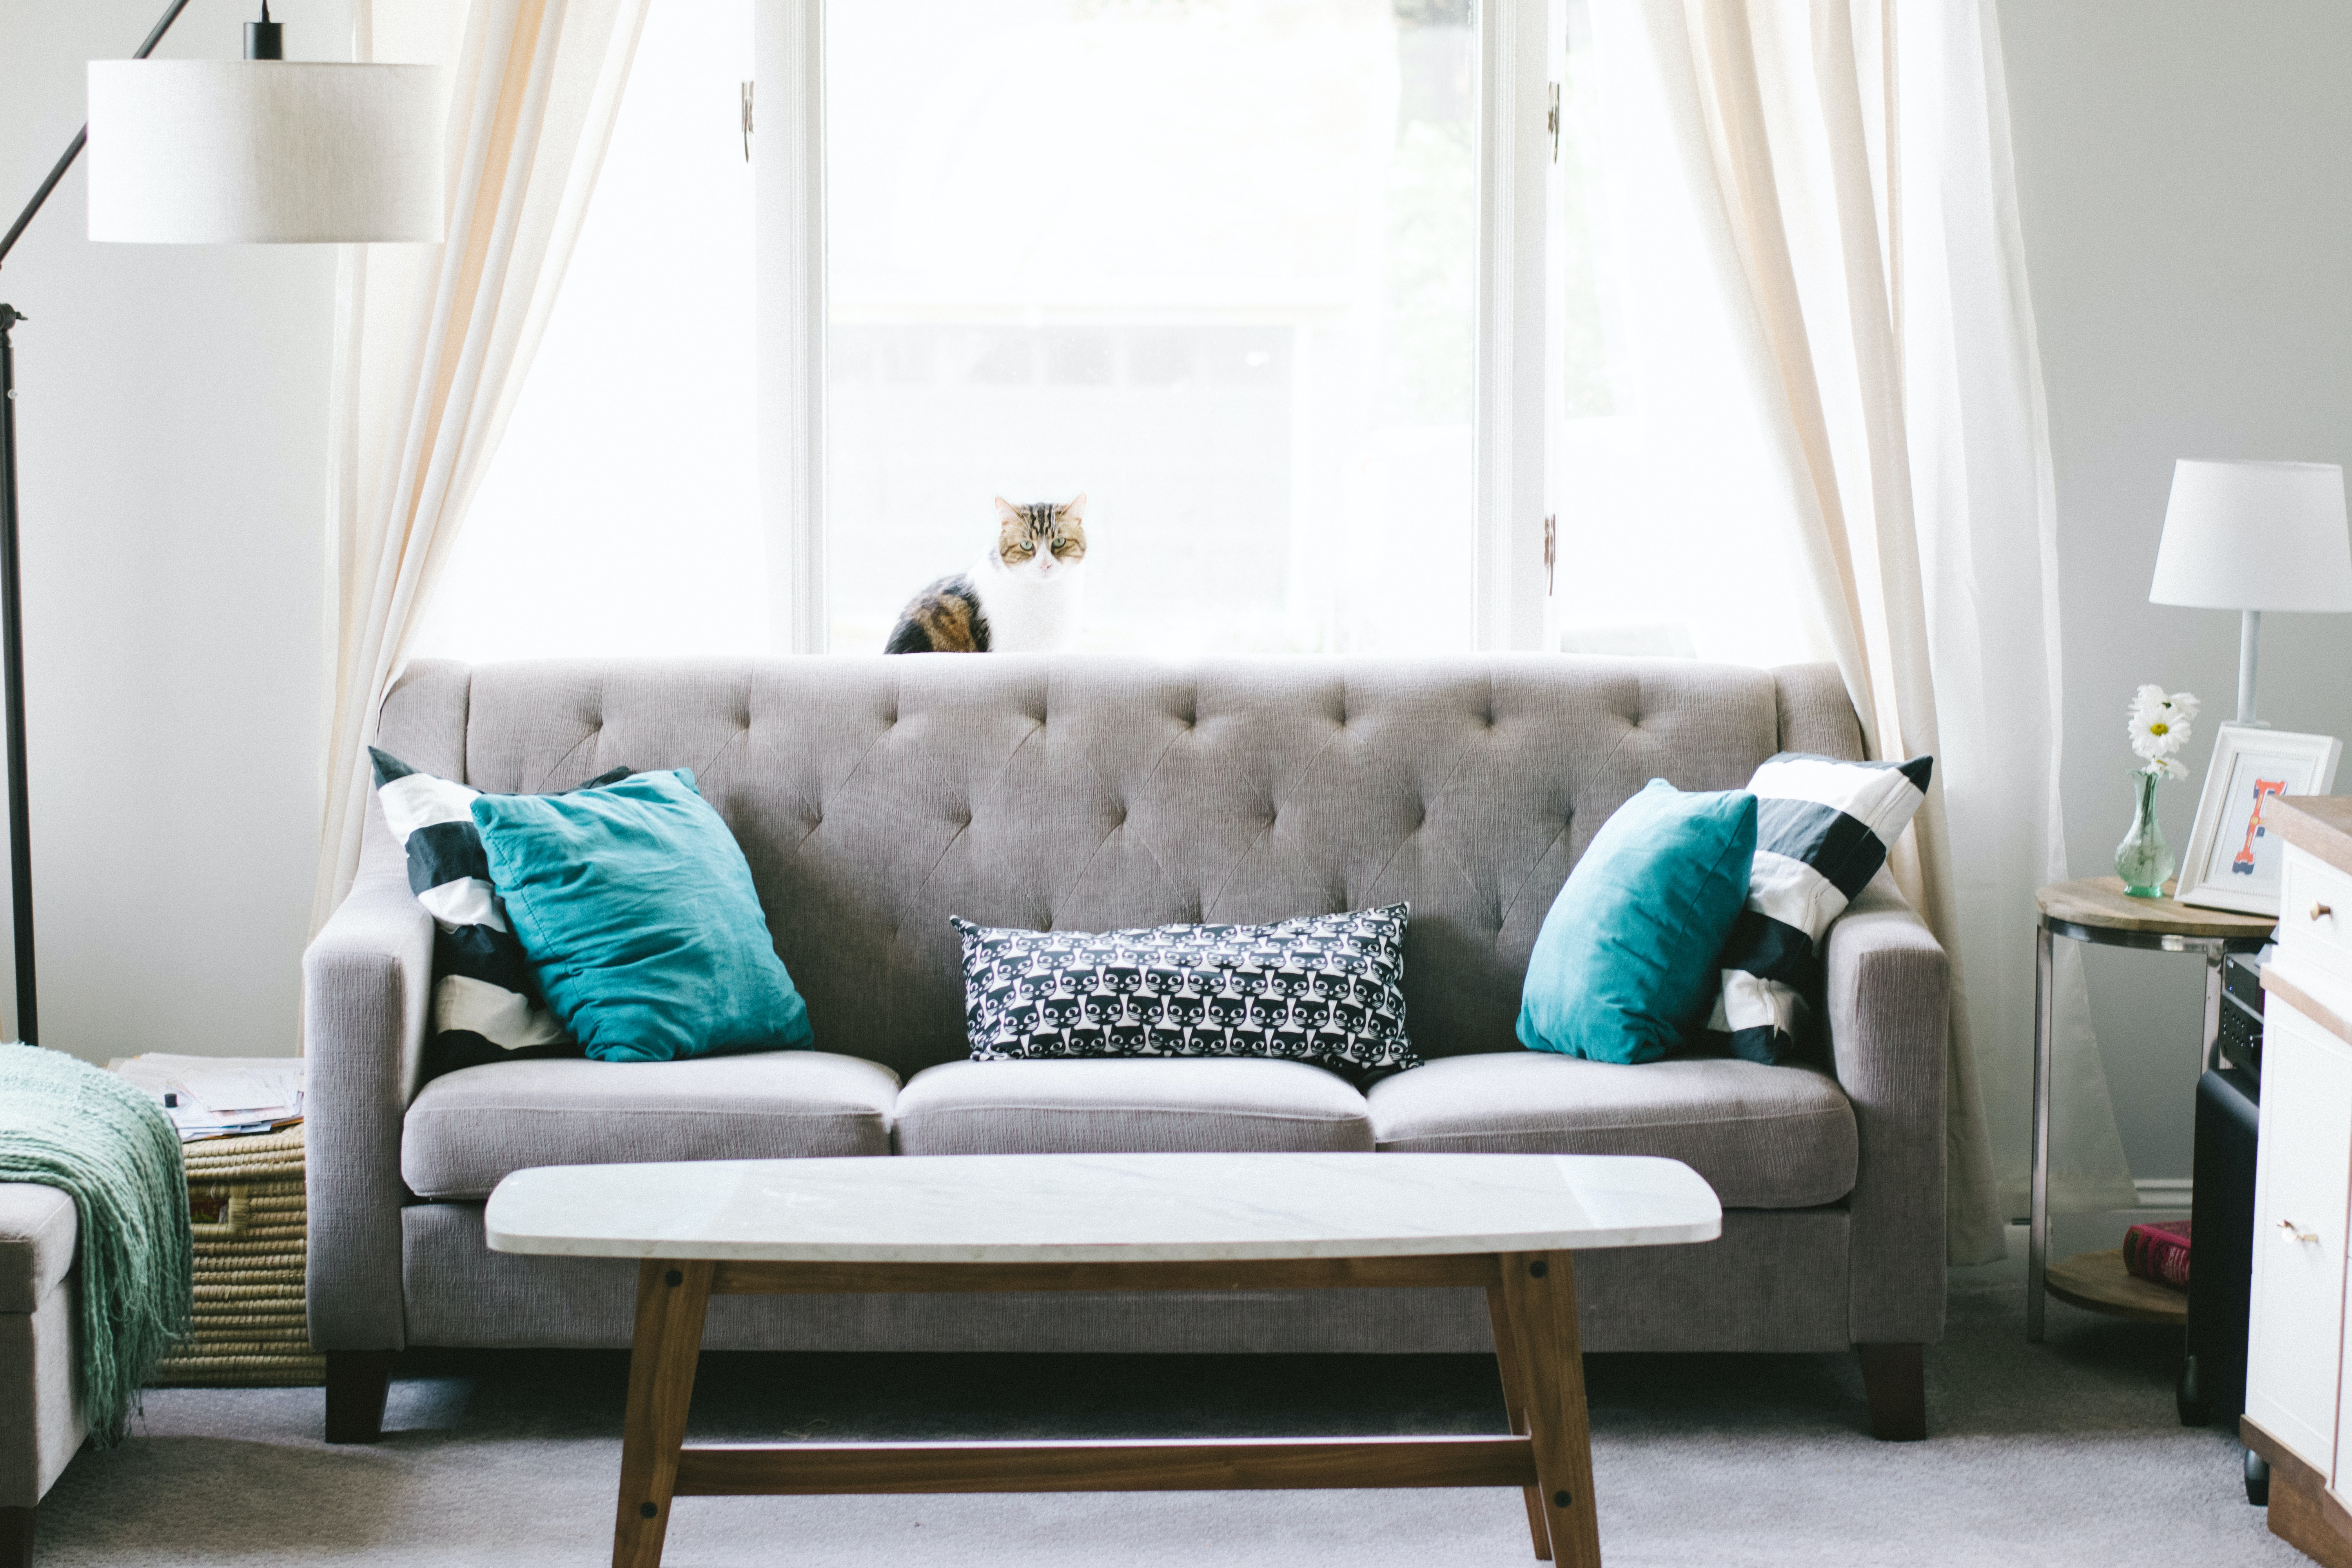 Cleaning Your Couch from Top to Bottom to Underneath's featured image